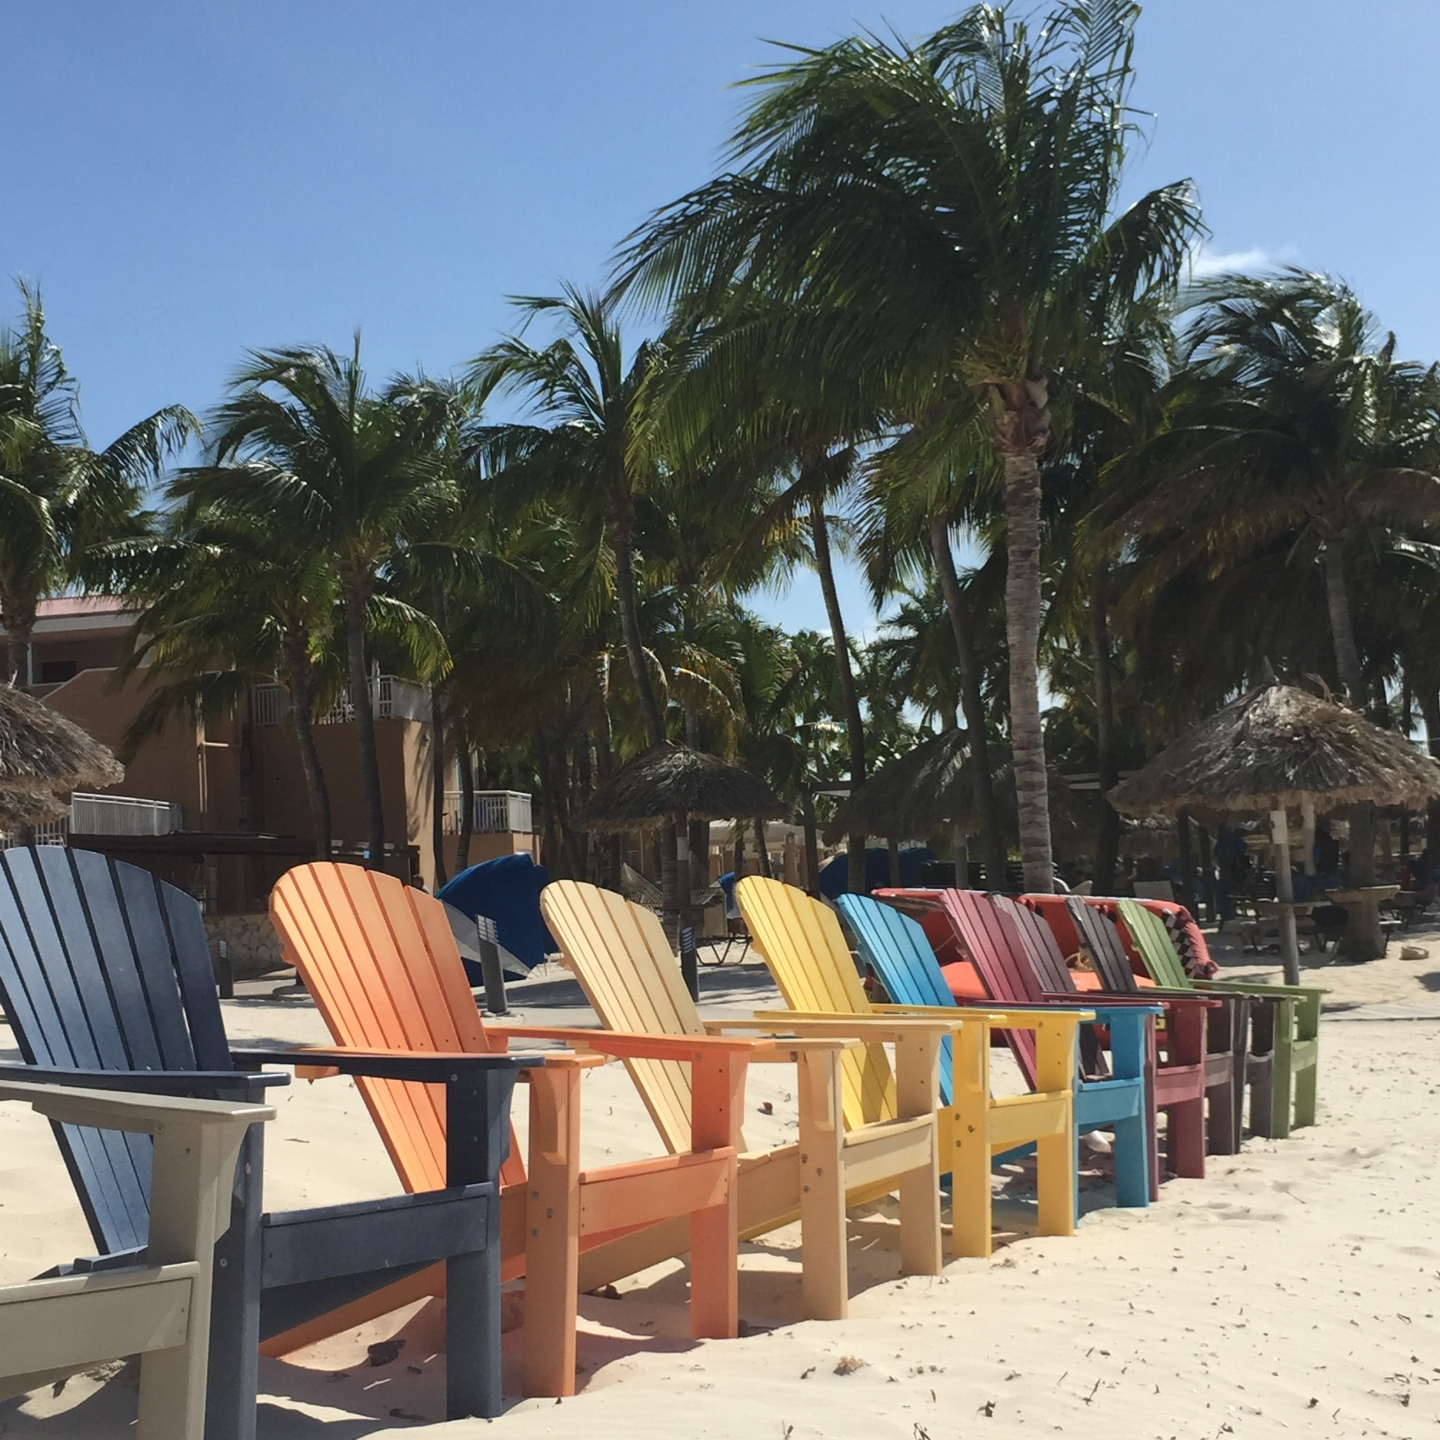 Lined up sunchairs